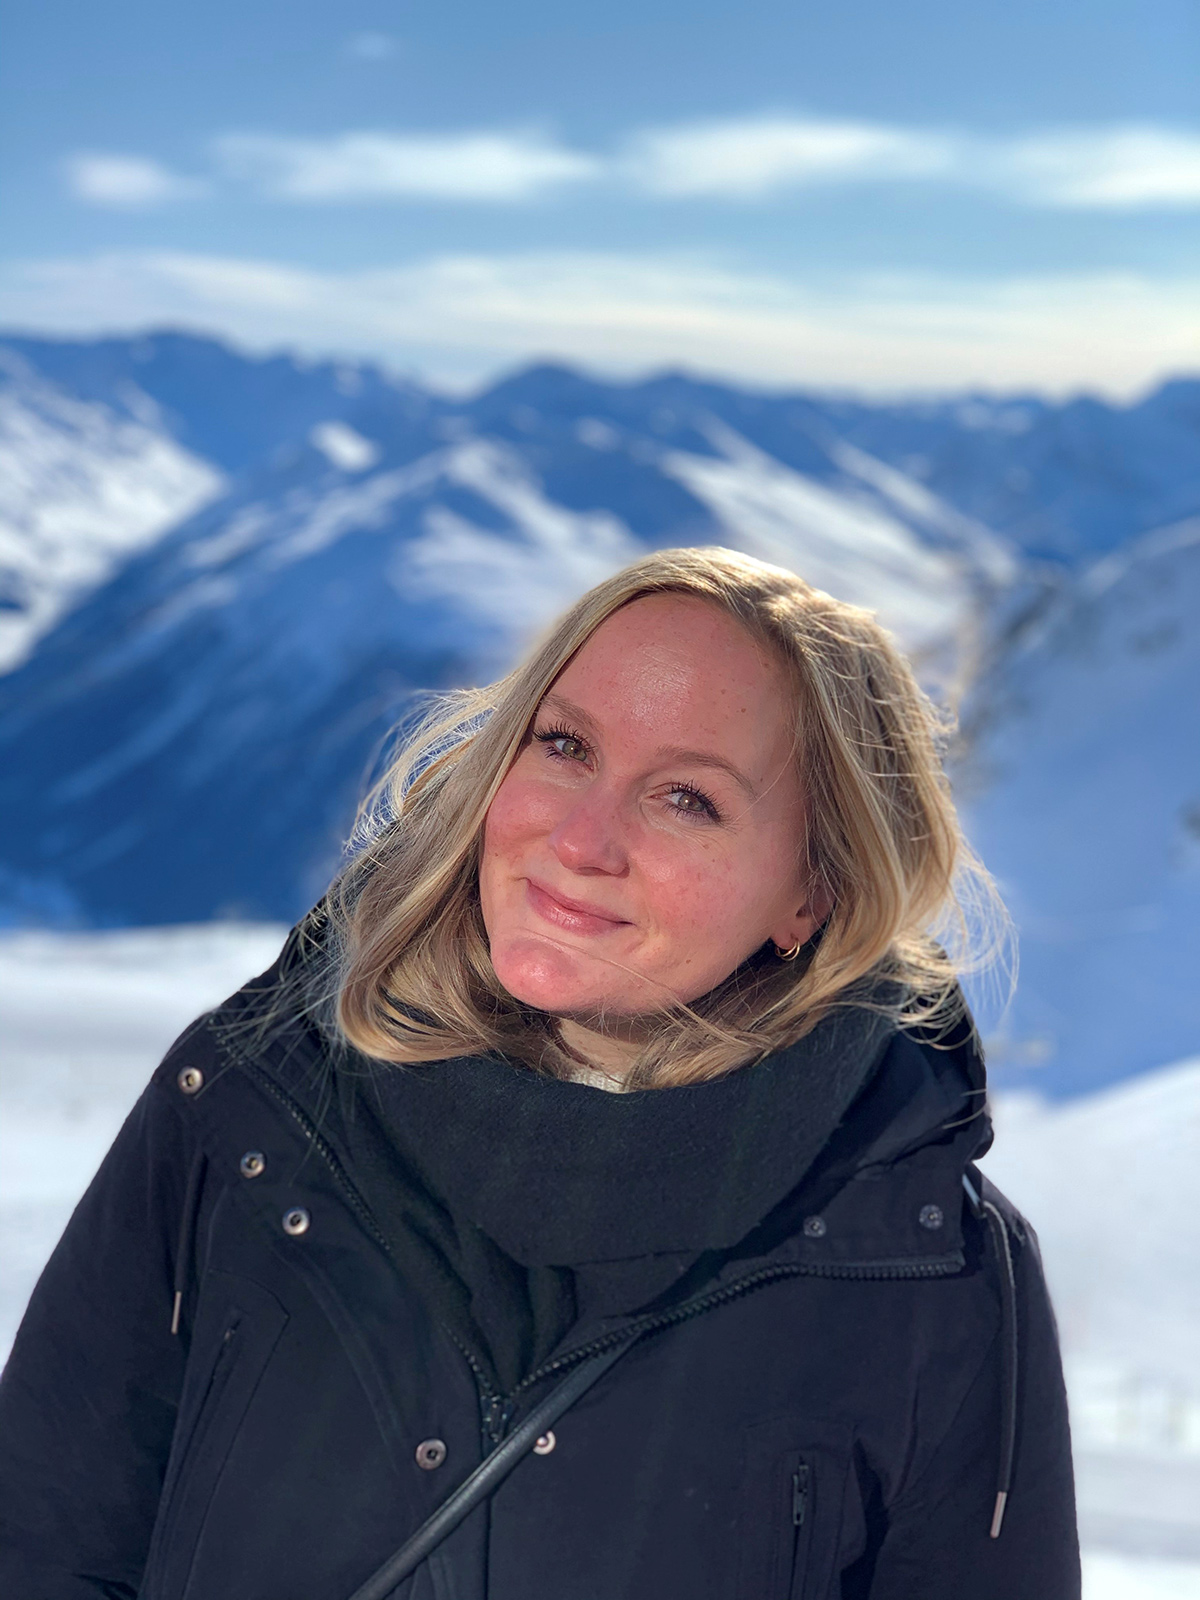 Hanne T. Berli in front of mountains